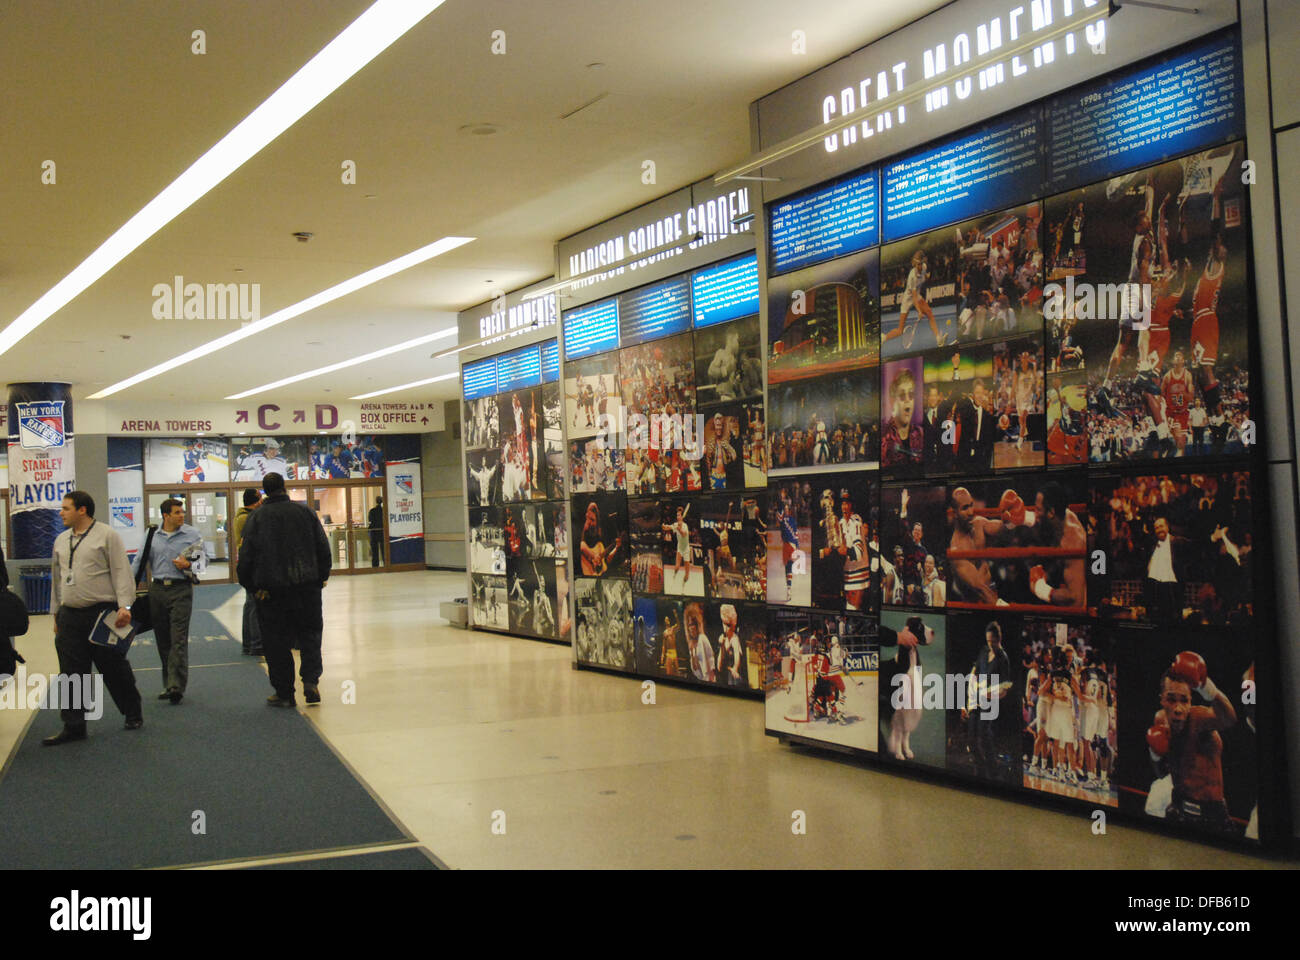 Lobby Of Madison Square Garden Amazing Pictures